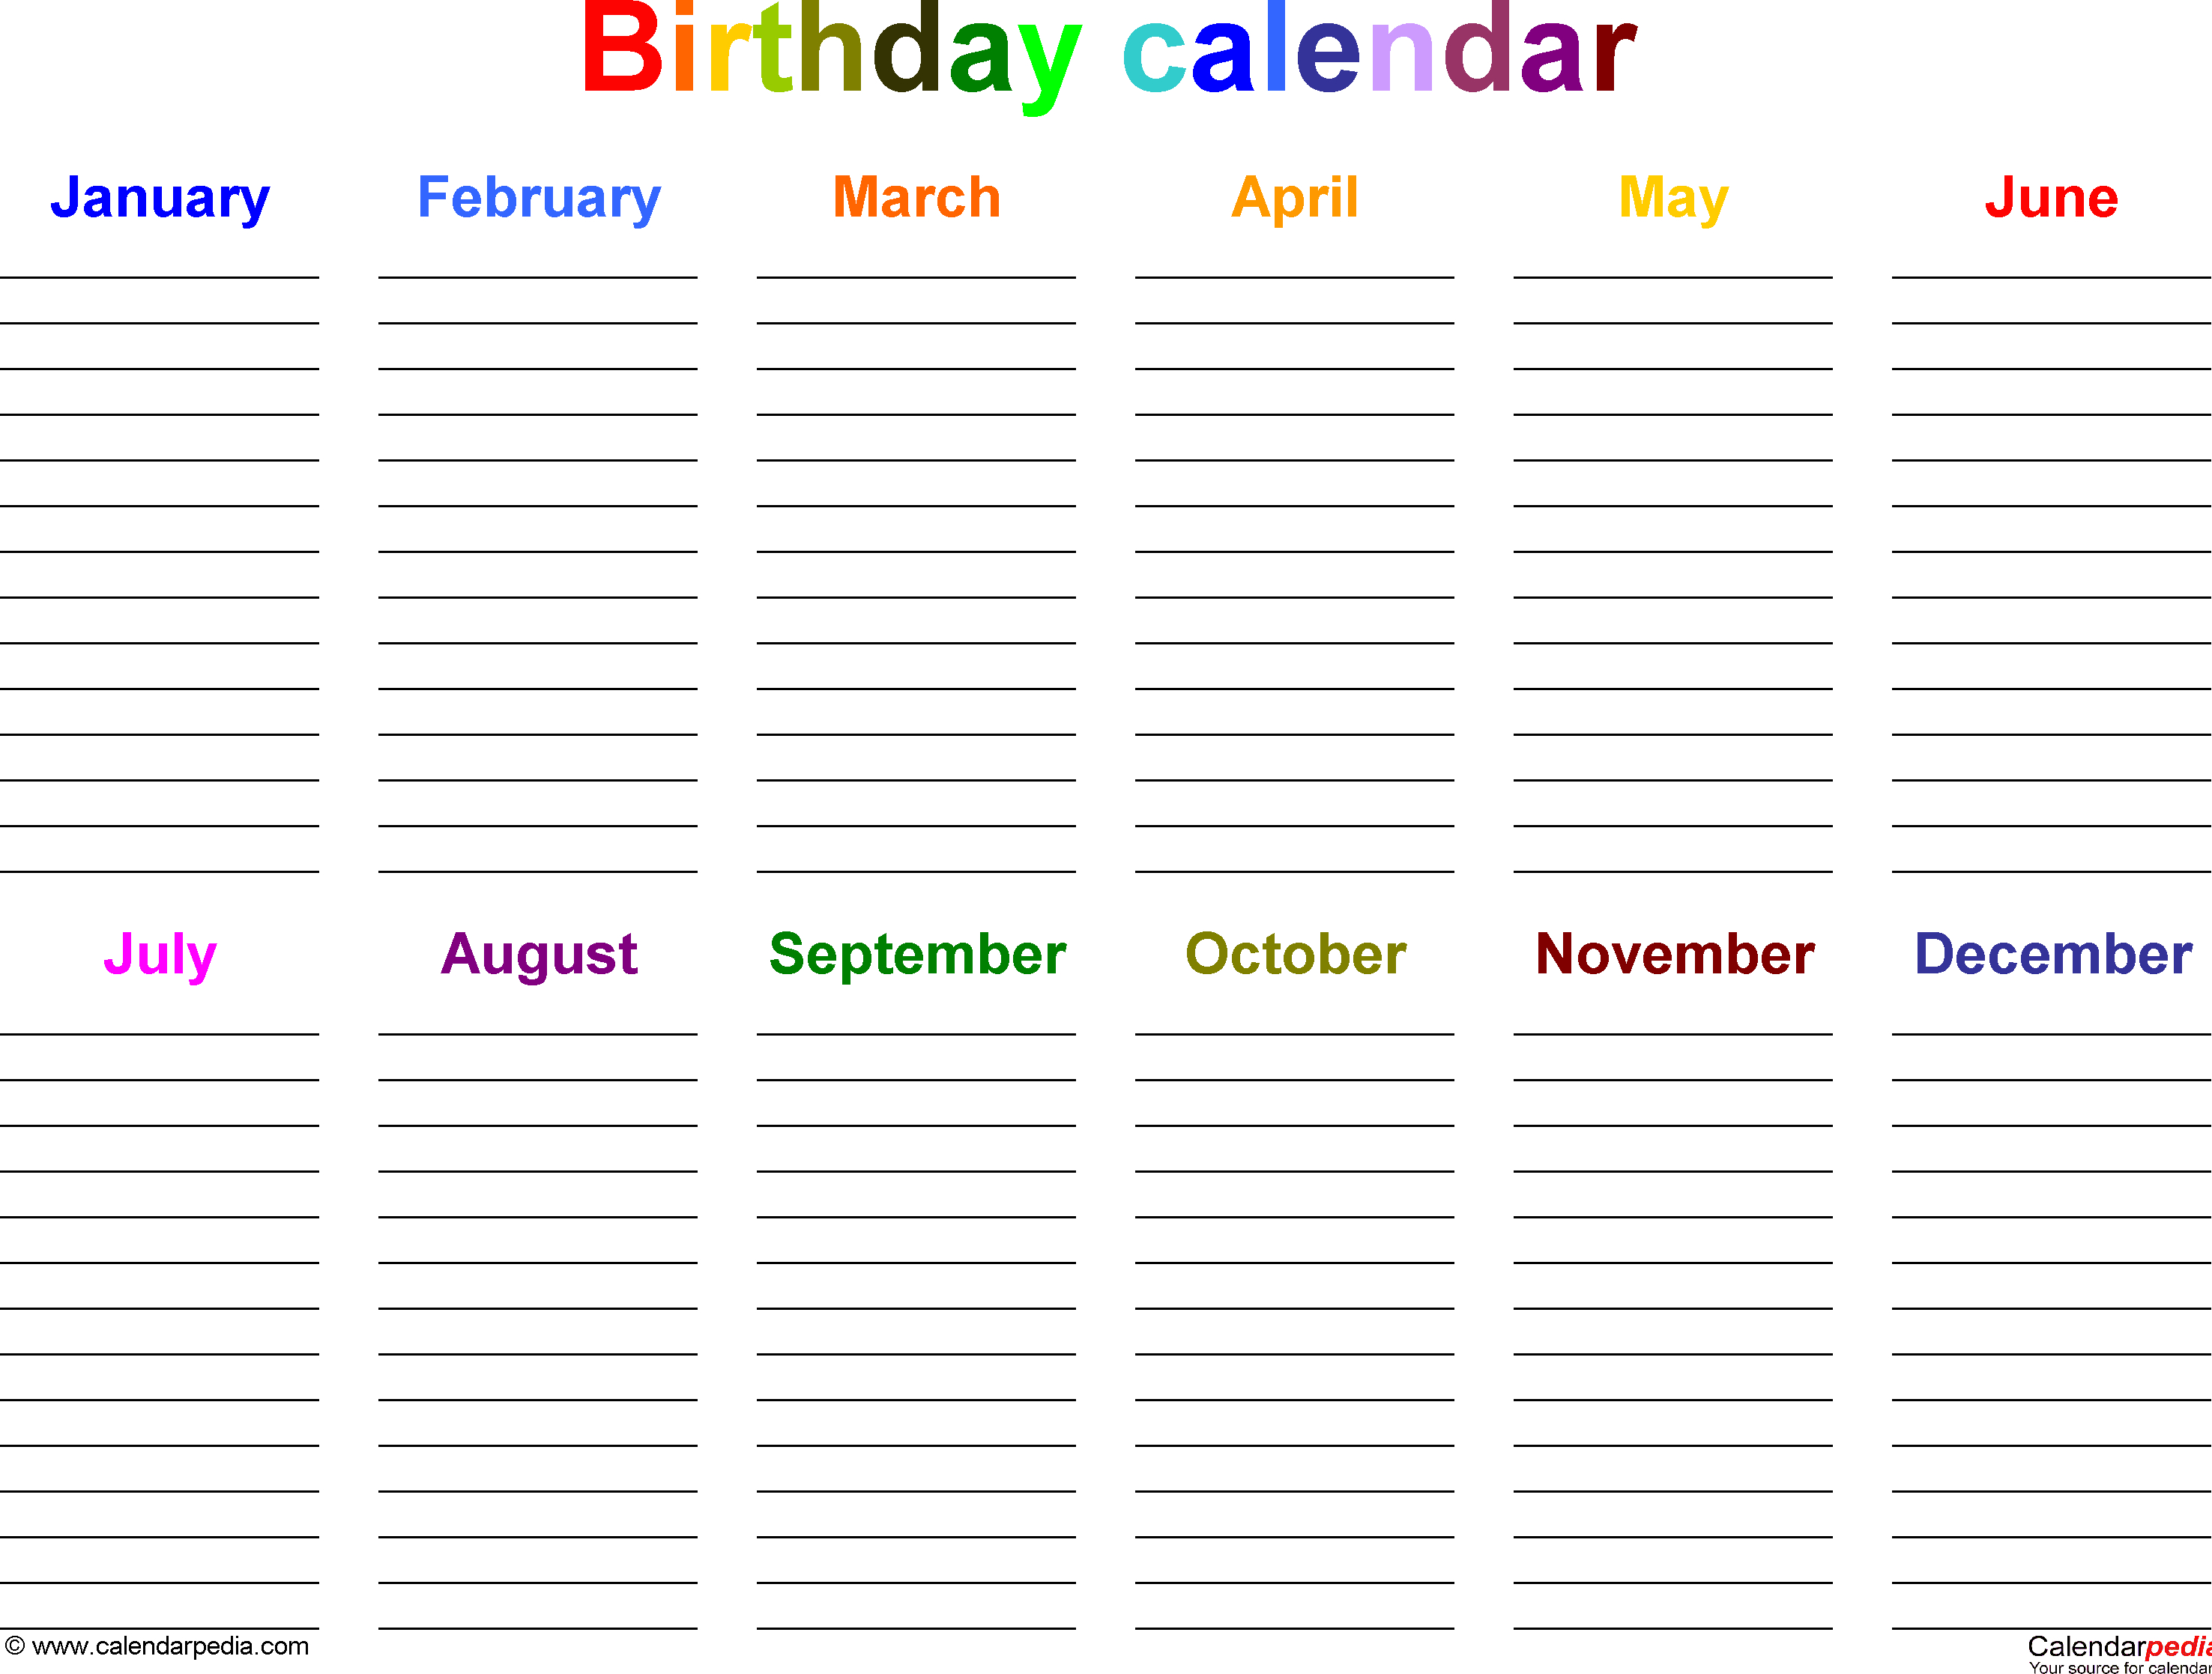 Excel Template For Birthday Calendar In Color (Landscape pertaining to Yearly Birthday Calendar Template